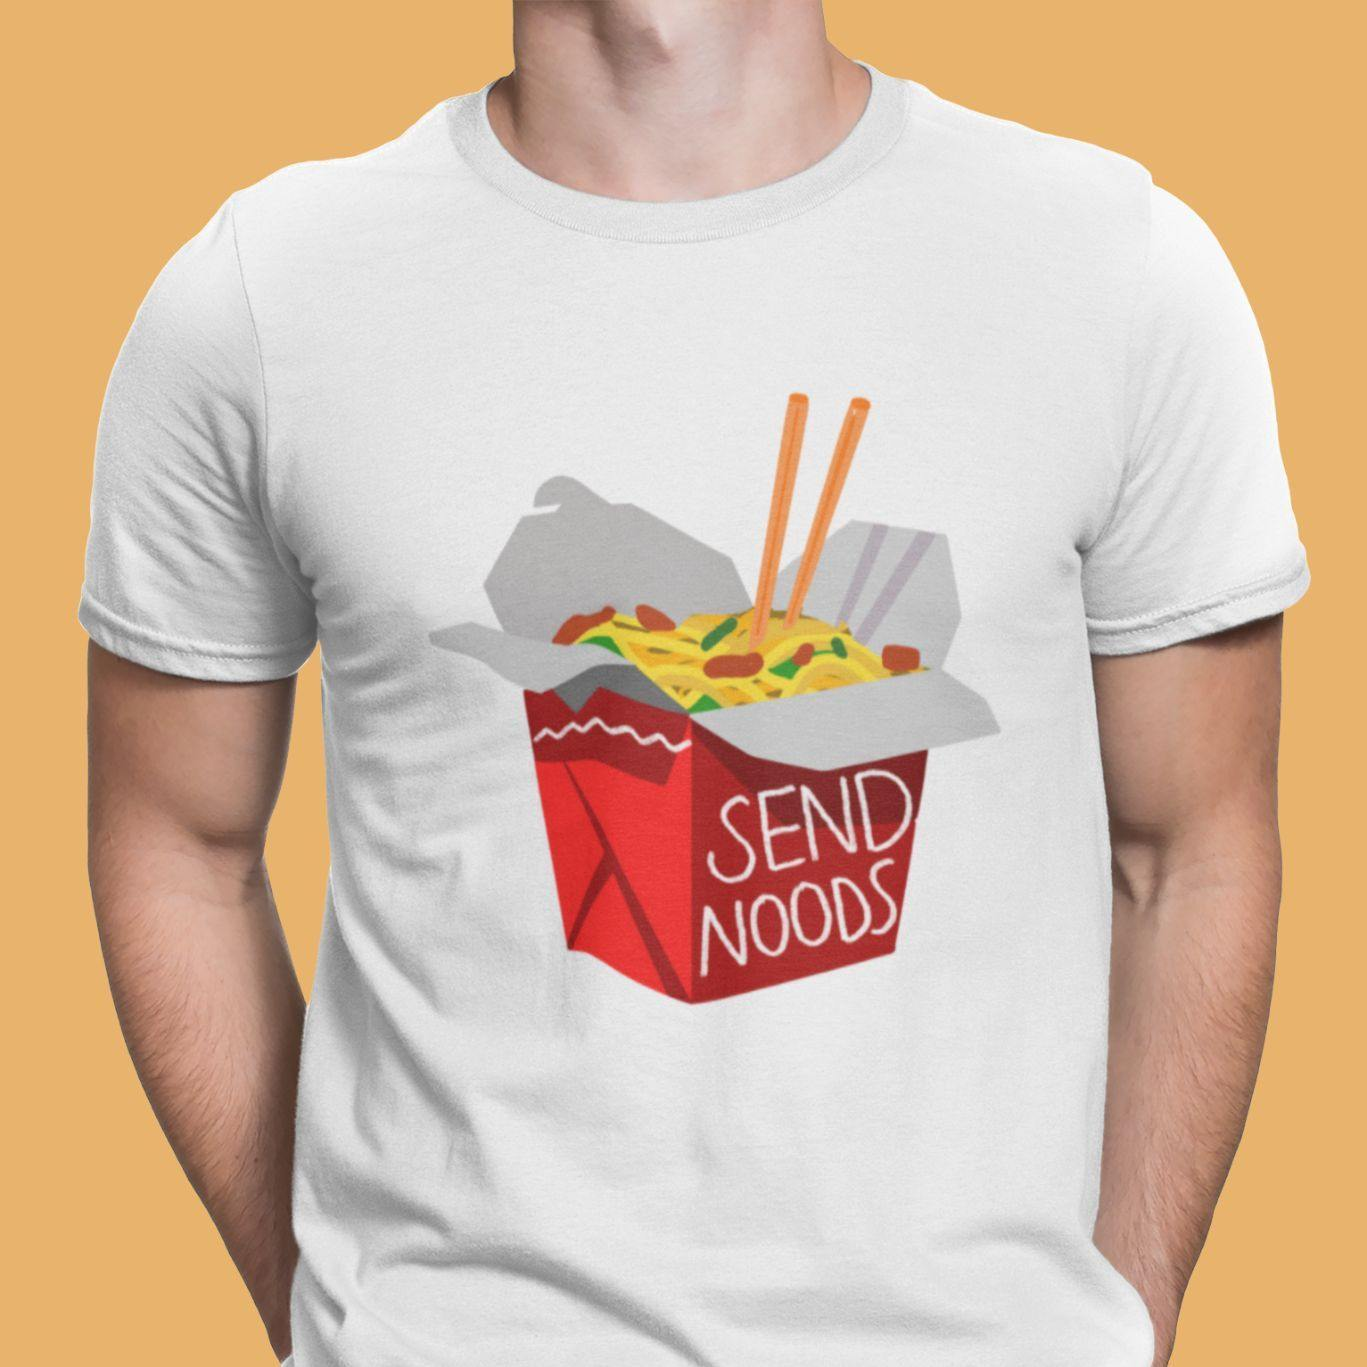 Send Noods - Men's Tshirt - Daily Suvichar Store